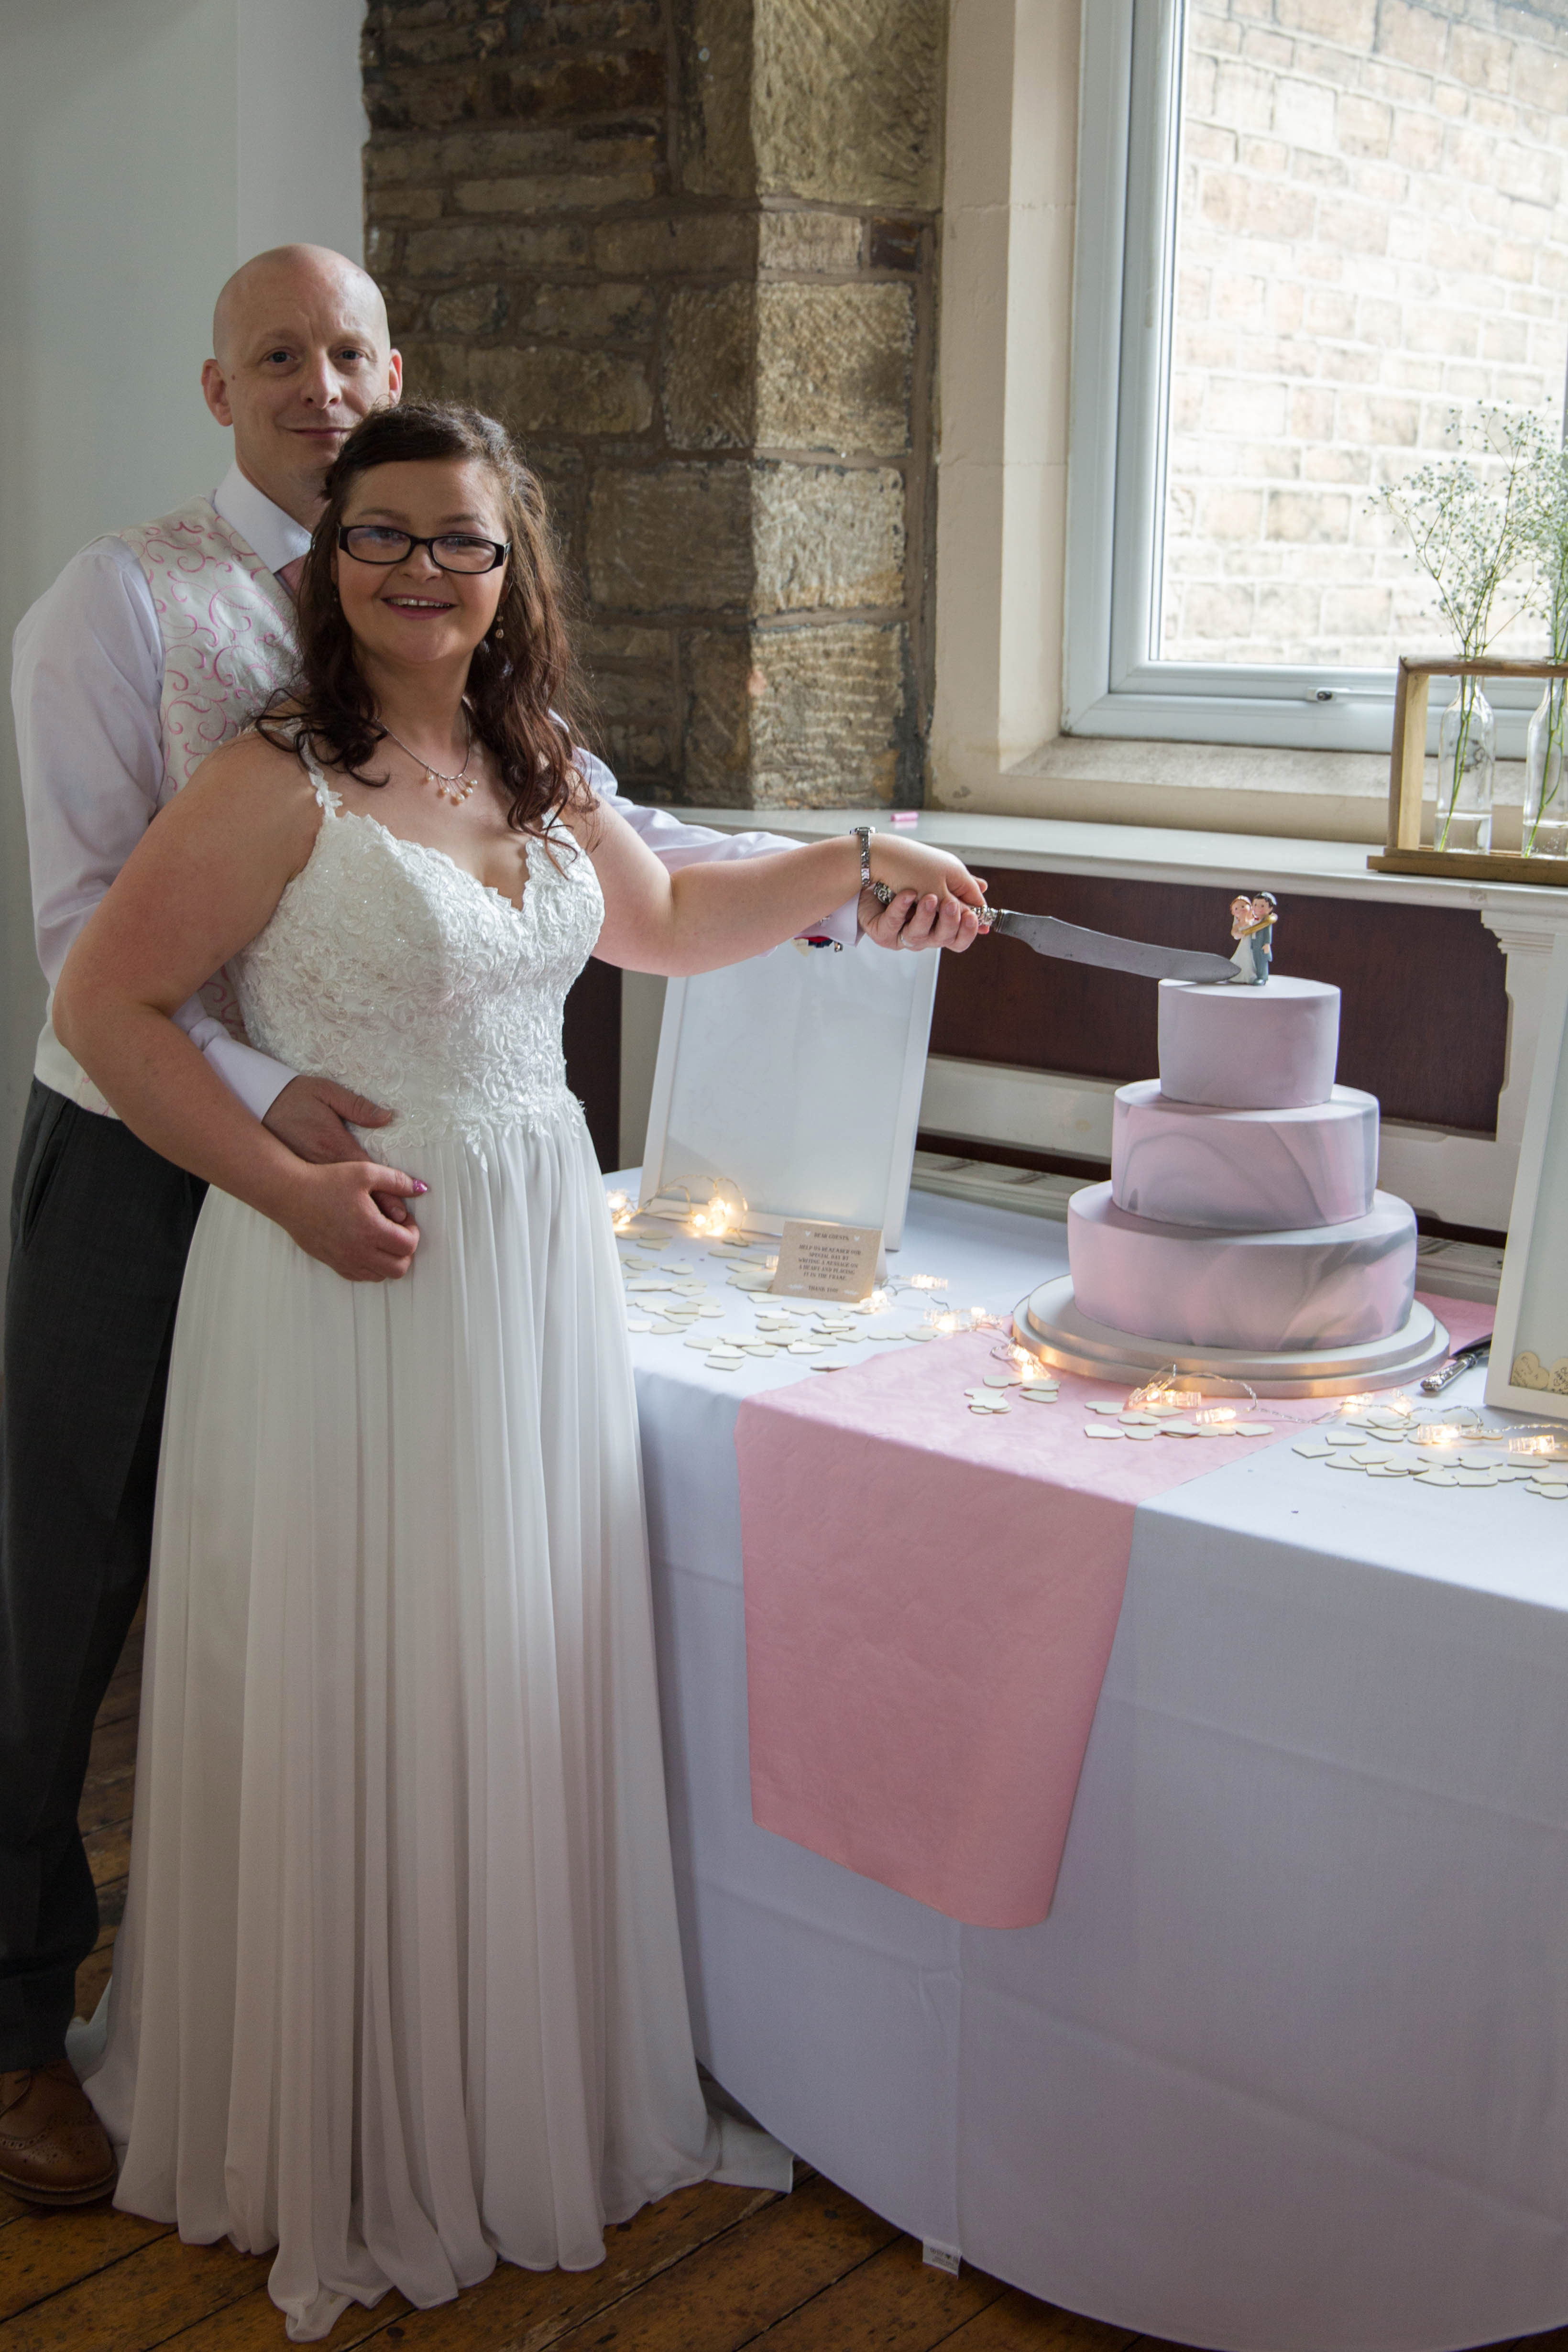 Oldham wedding photographer - cake cutting